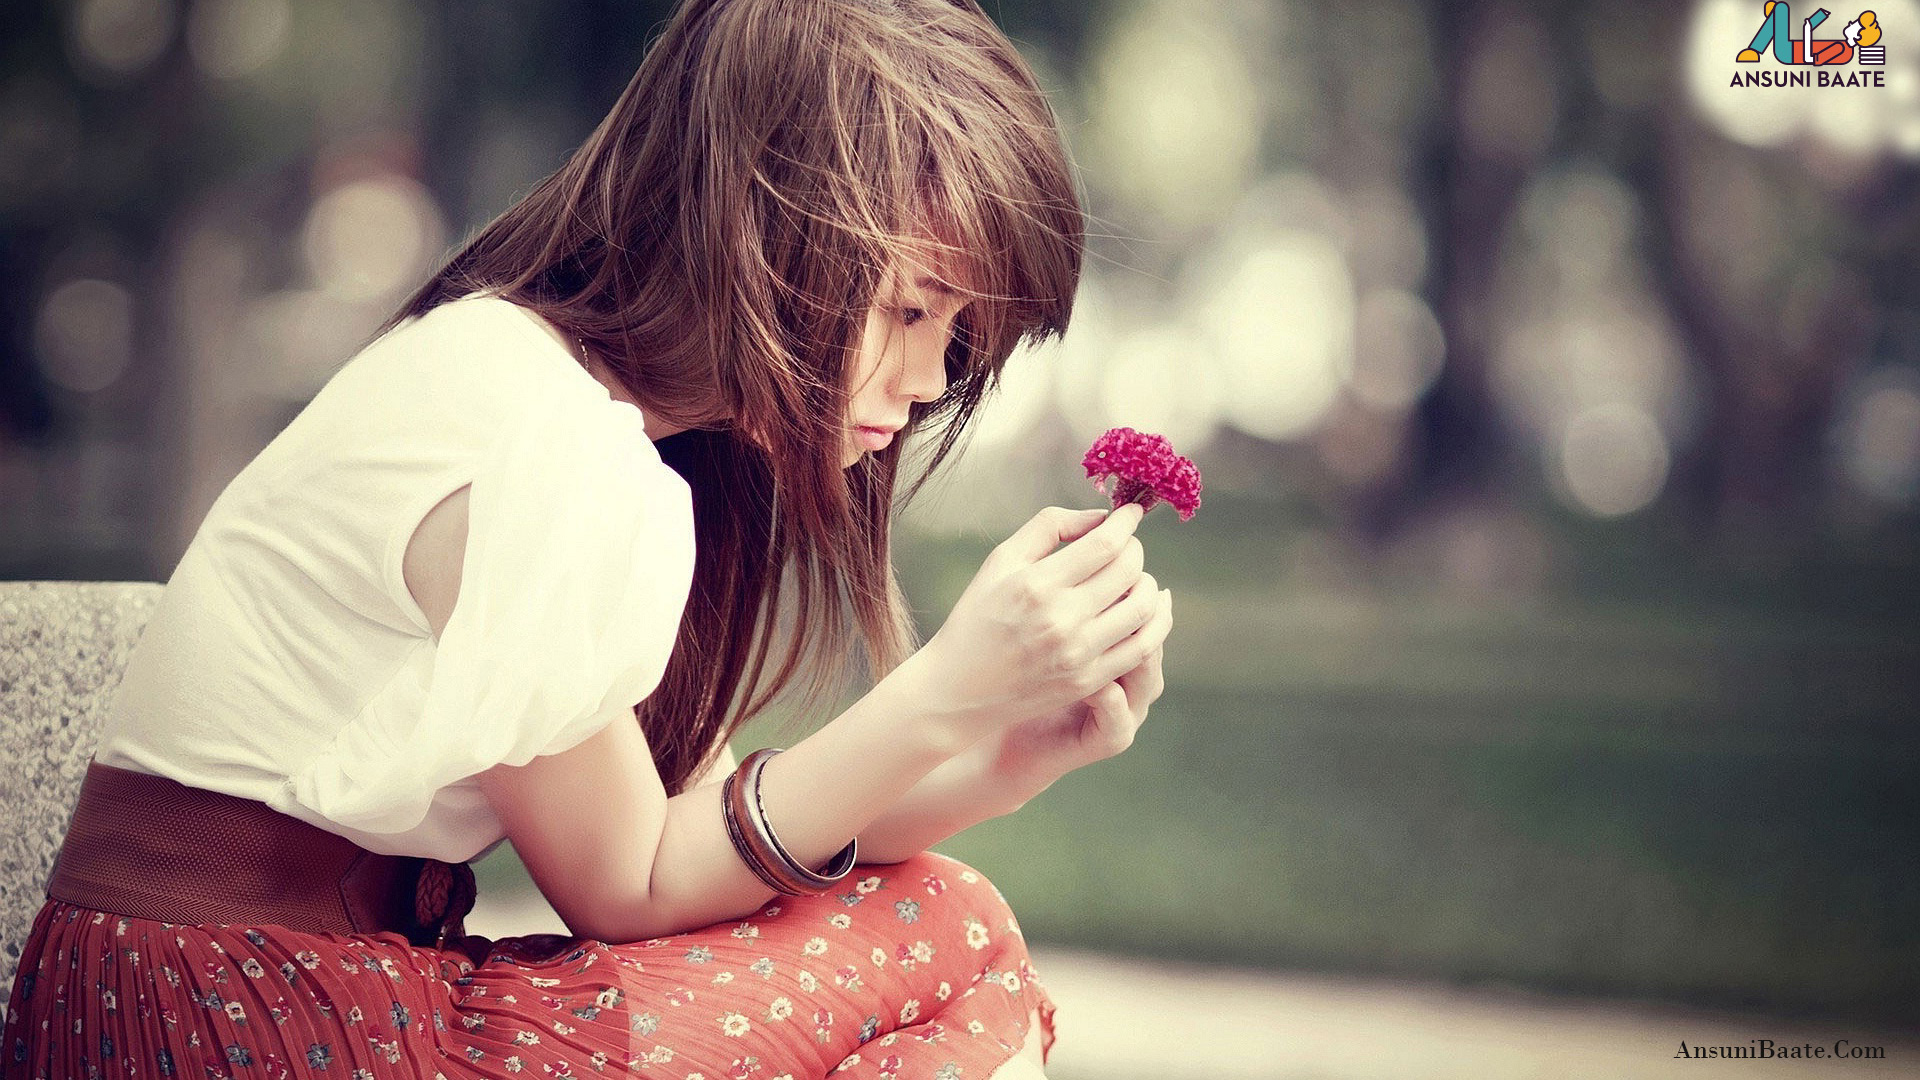 sad pic sad girls in love wallpaper hd heart touching sad boy wallpaper alone boy sad images of sad girls sexy in love wallpaper hd hindi